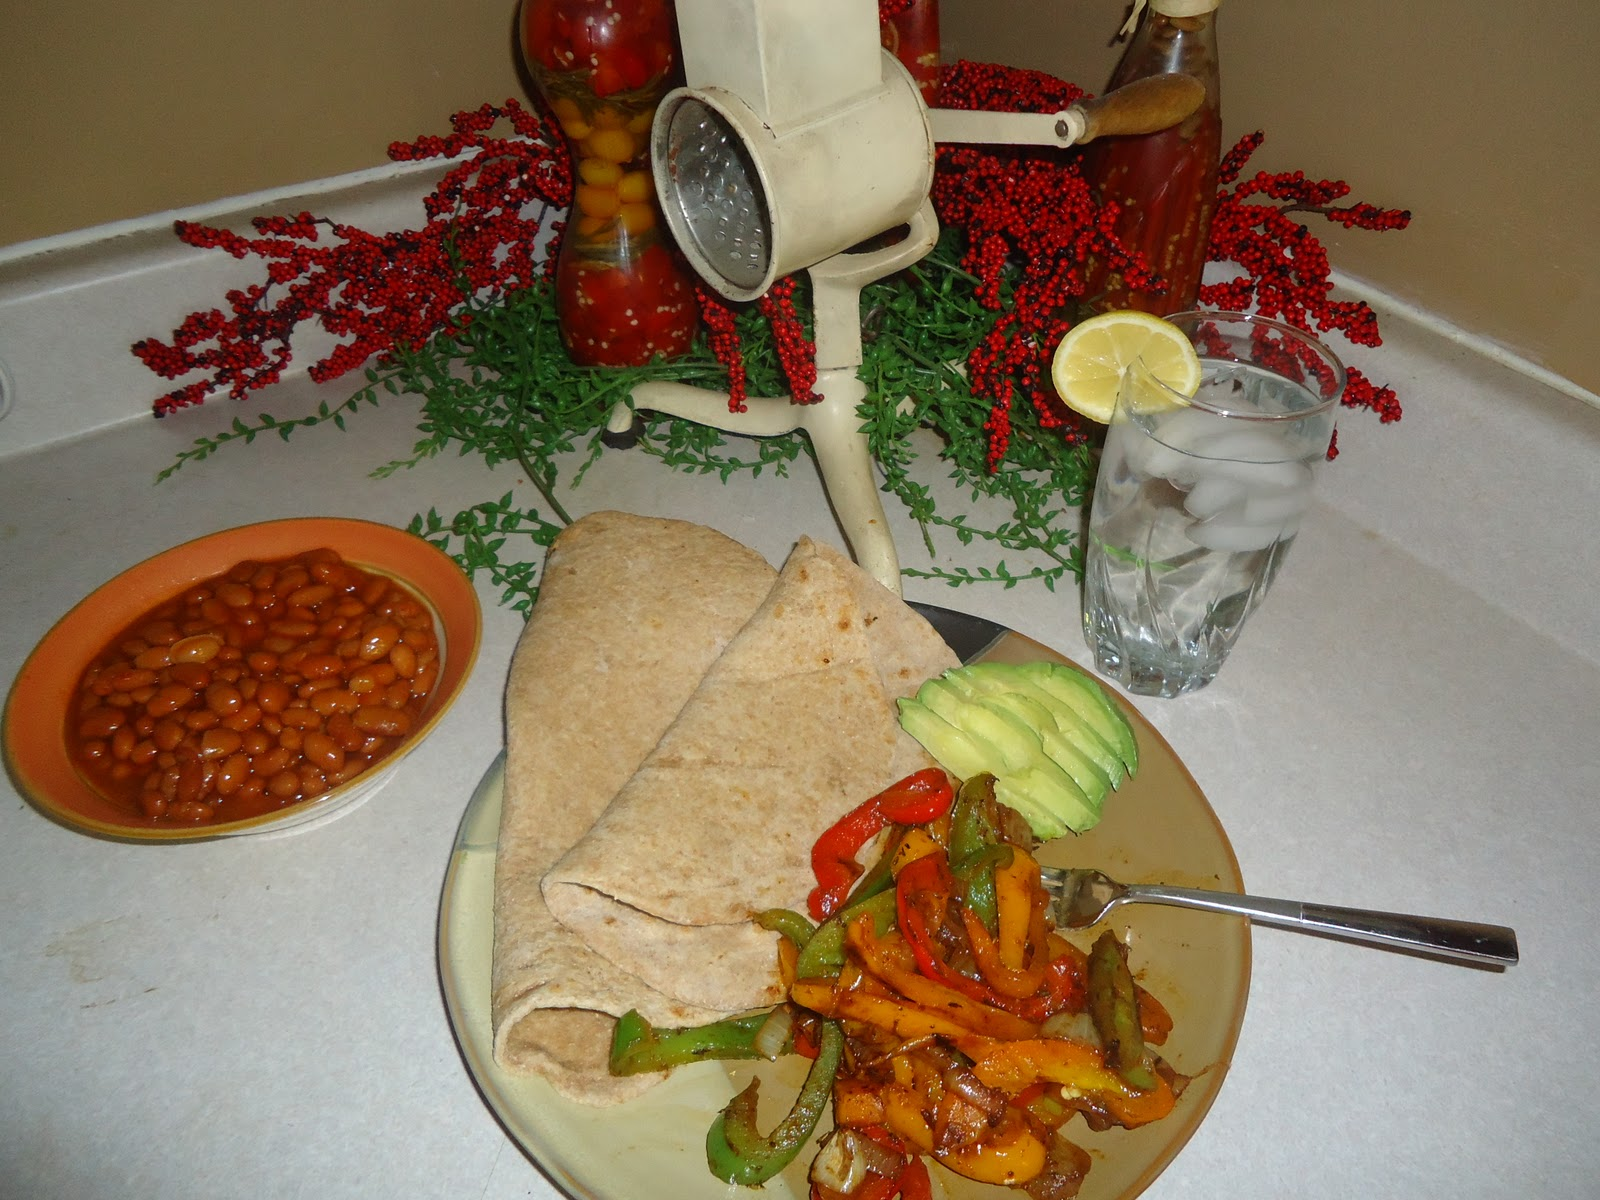 Today S Daniel Fast Recipe Whole Wheat Flat Breads